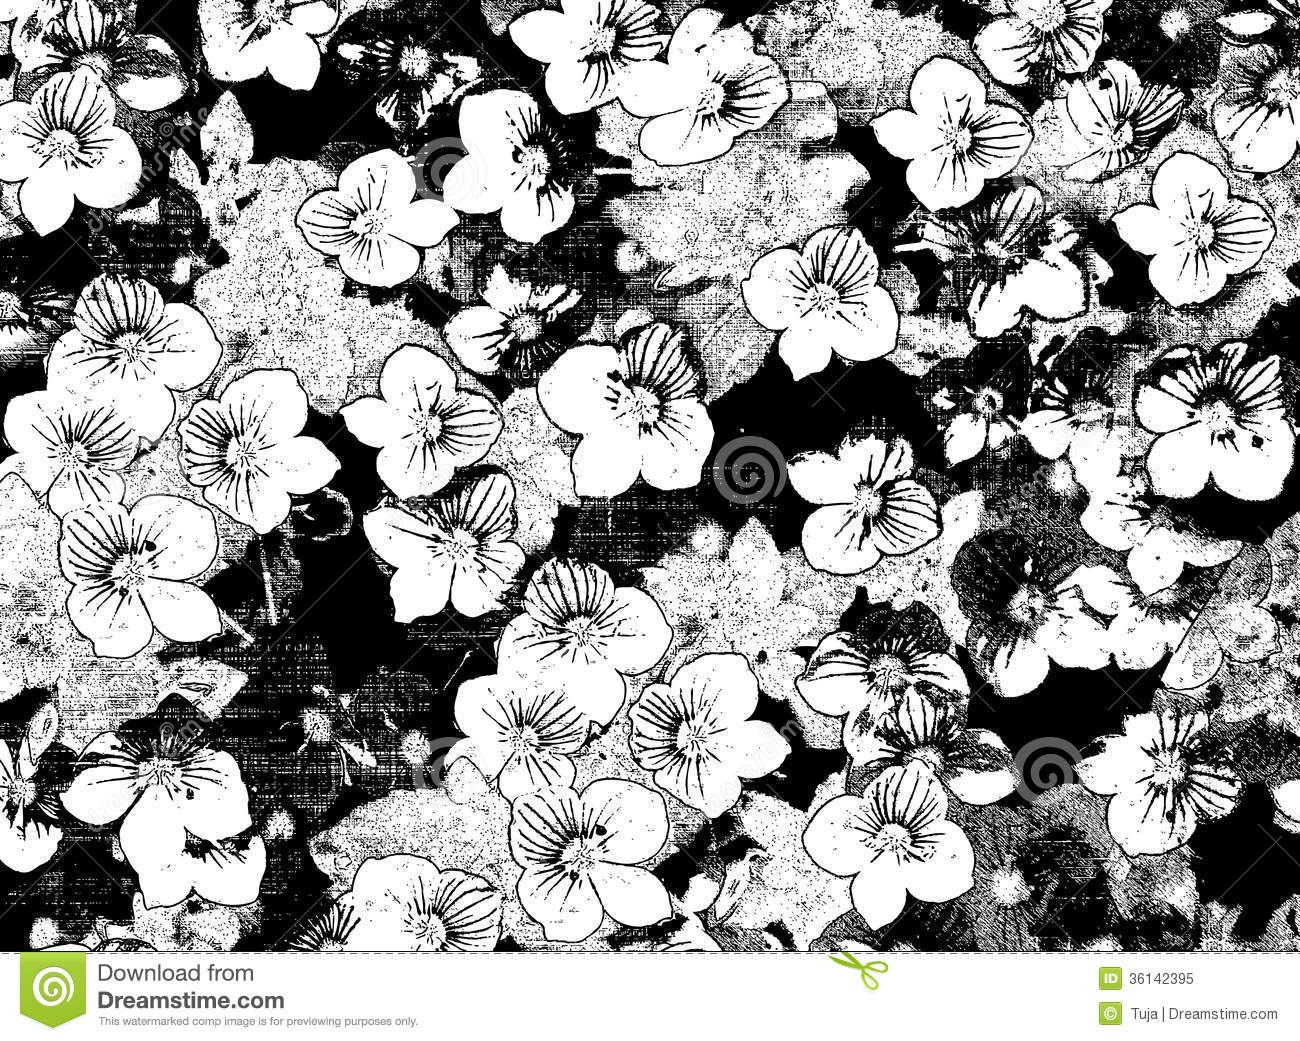 Black and white sketching floral background stock illustration download black and white sketching floral background stock illustration illustration of graphic decoration mightylinksfo